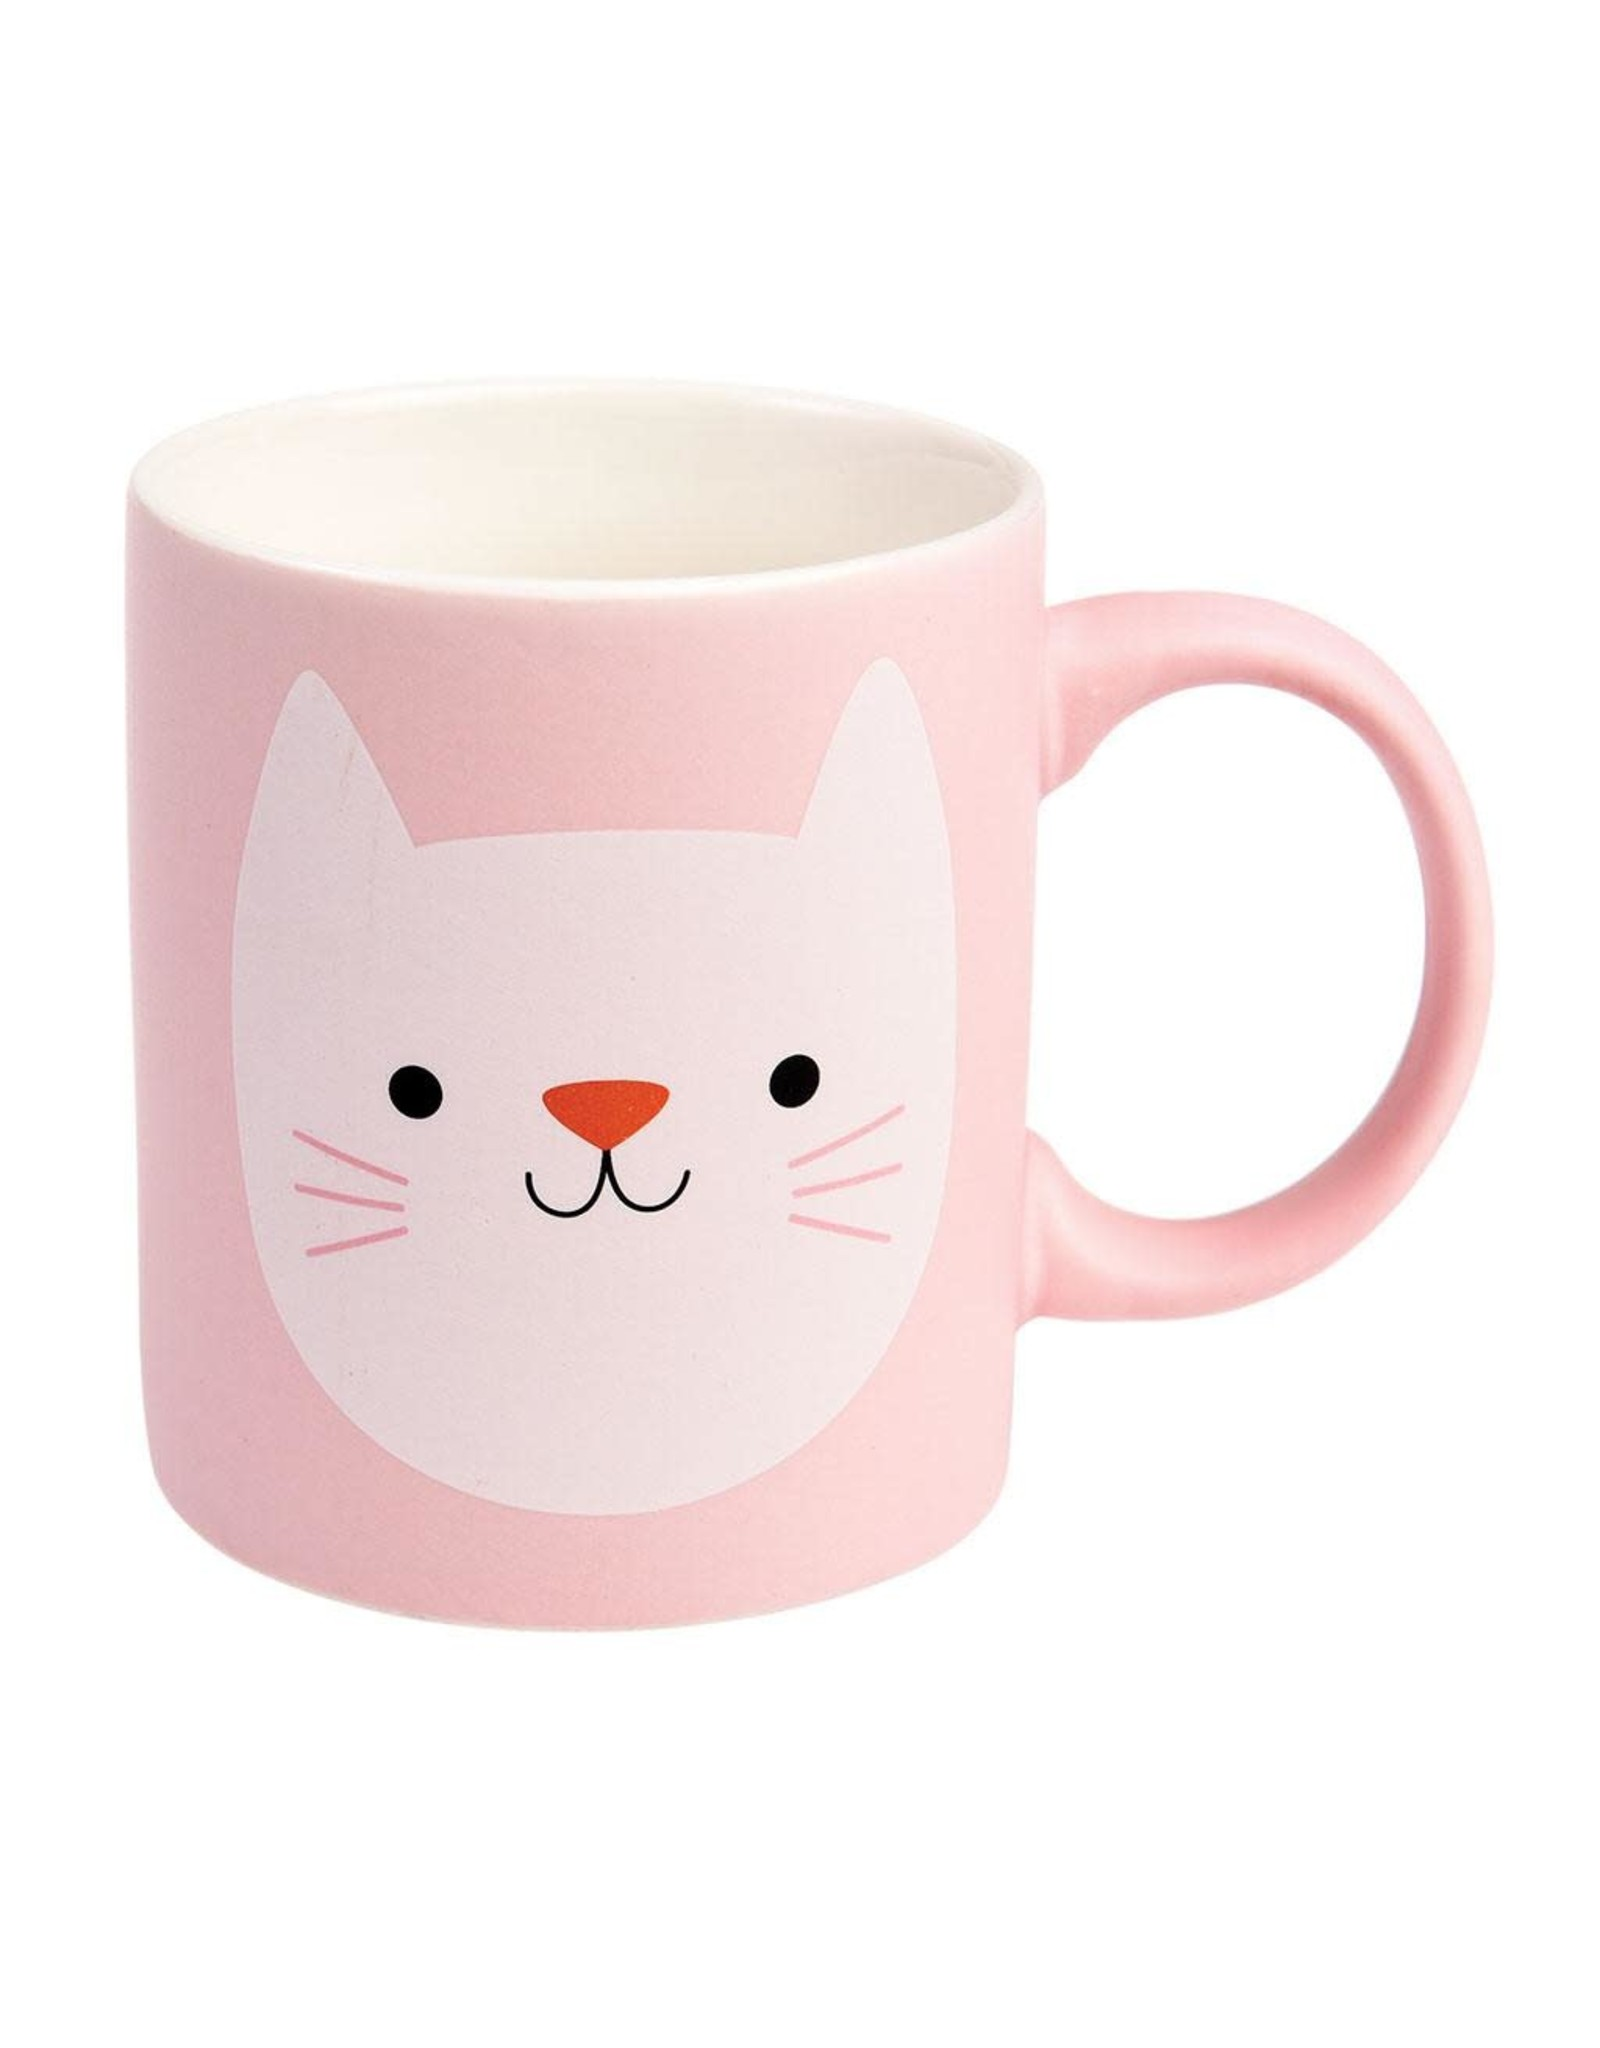 REX London Mug, Cookie the Cat